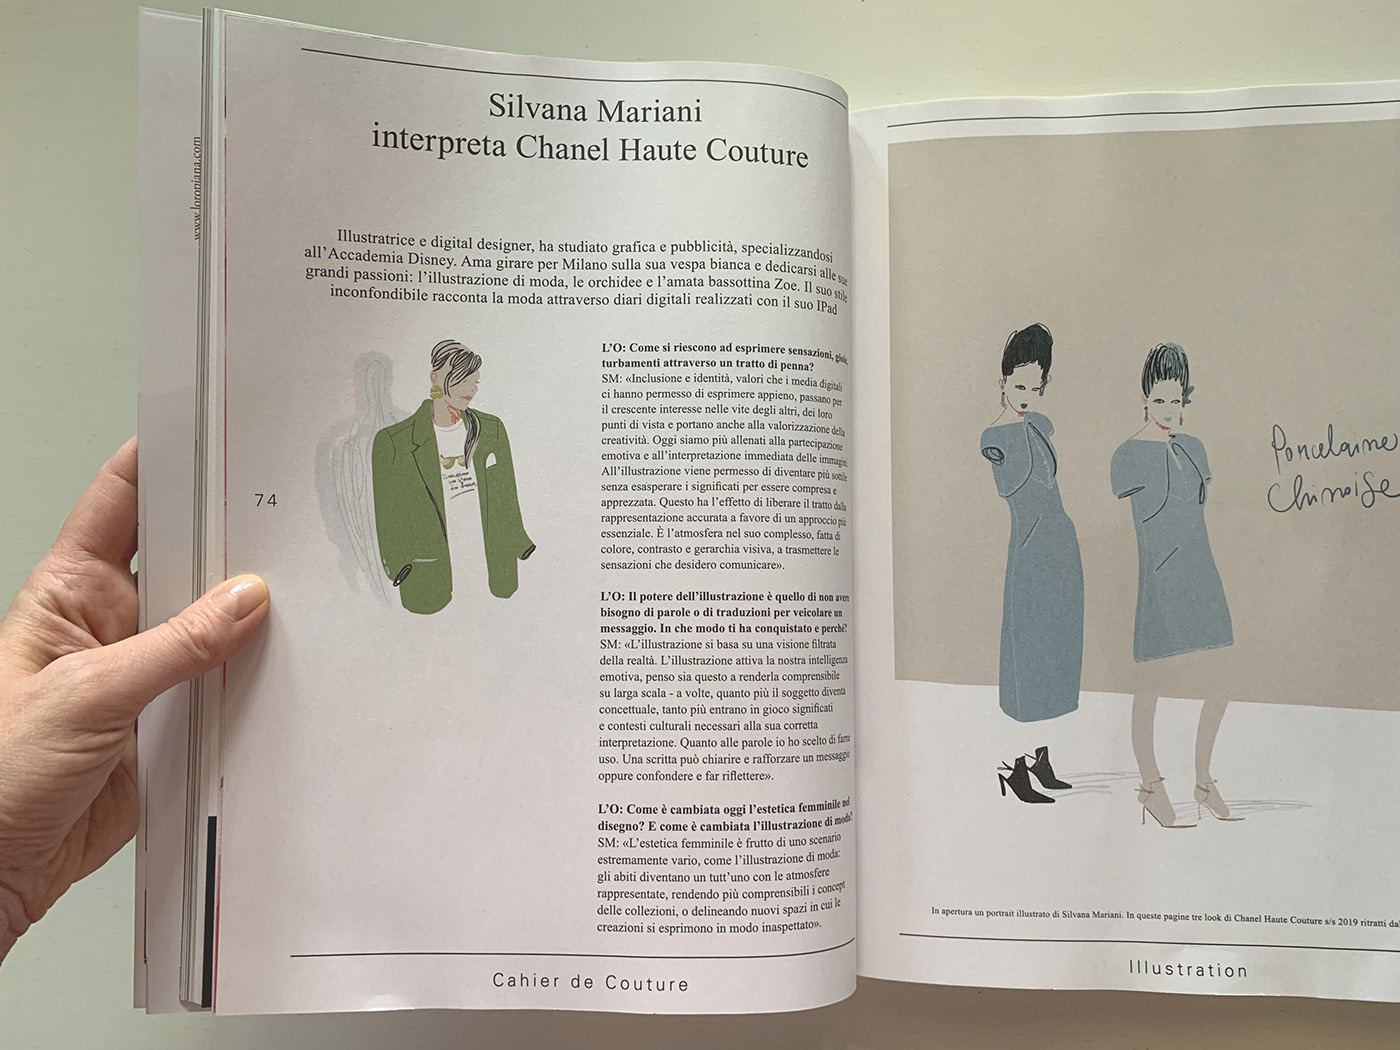 Magazine pages with the interview to Silvana Mariani